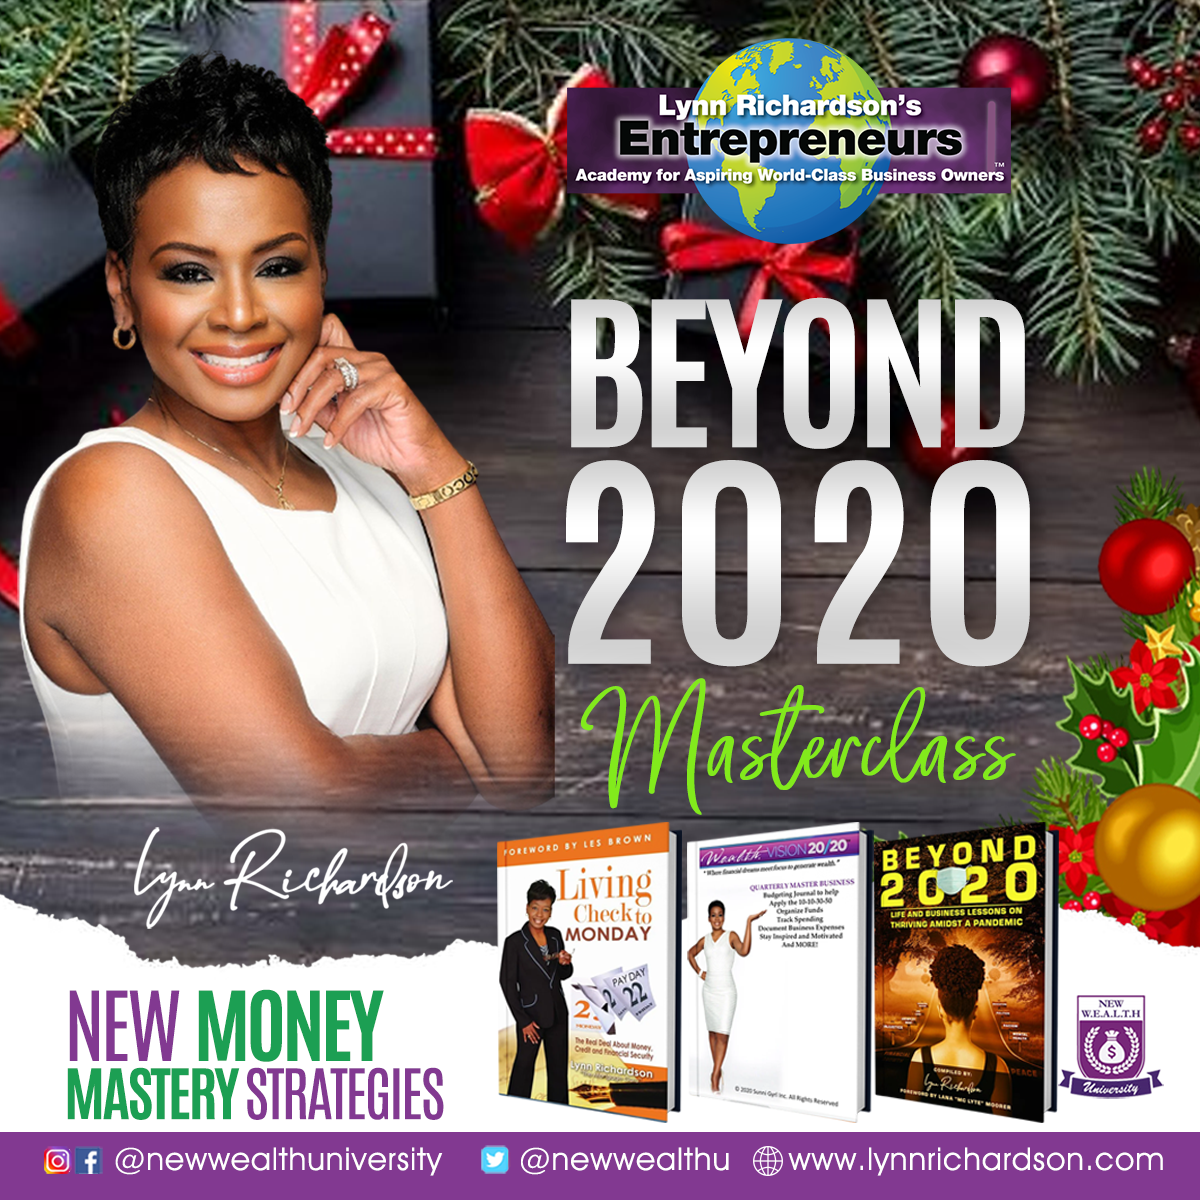 Beyond 2020 Master Class Gift Set: Protect Your W.E.A.L.T.H. for Life!